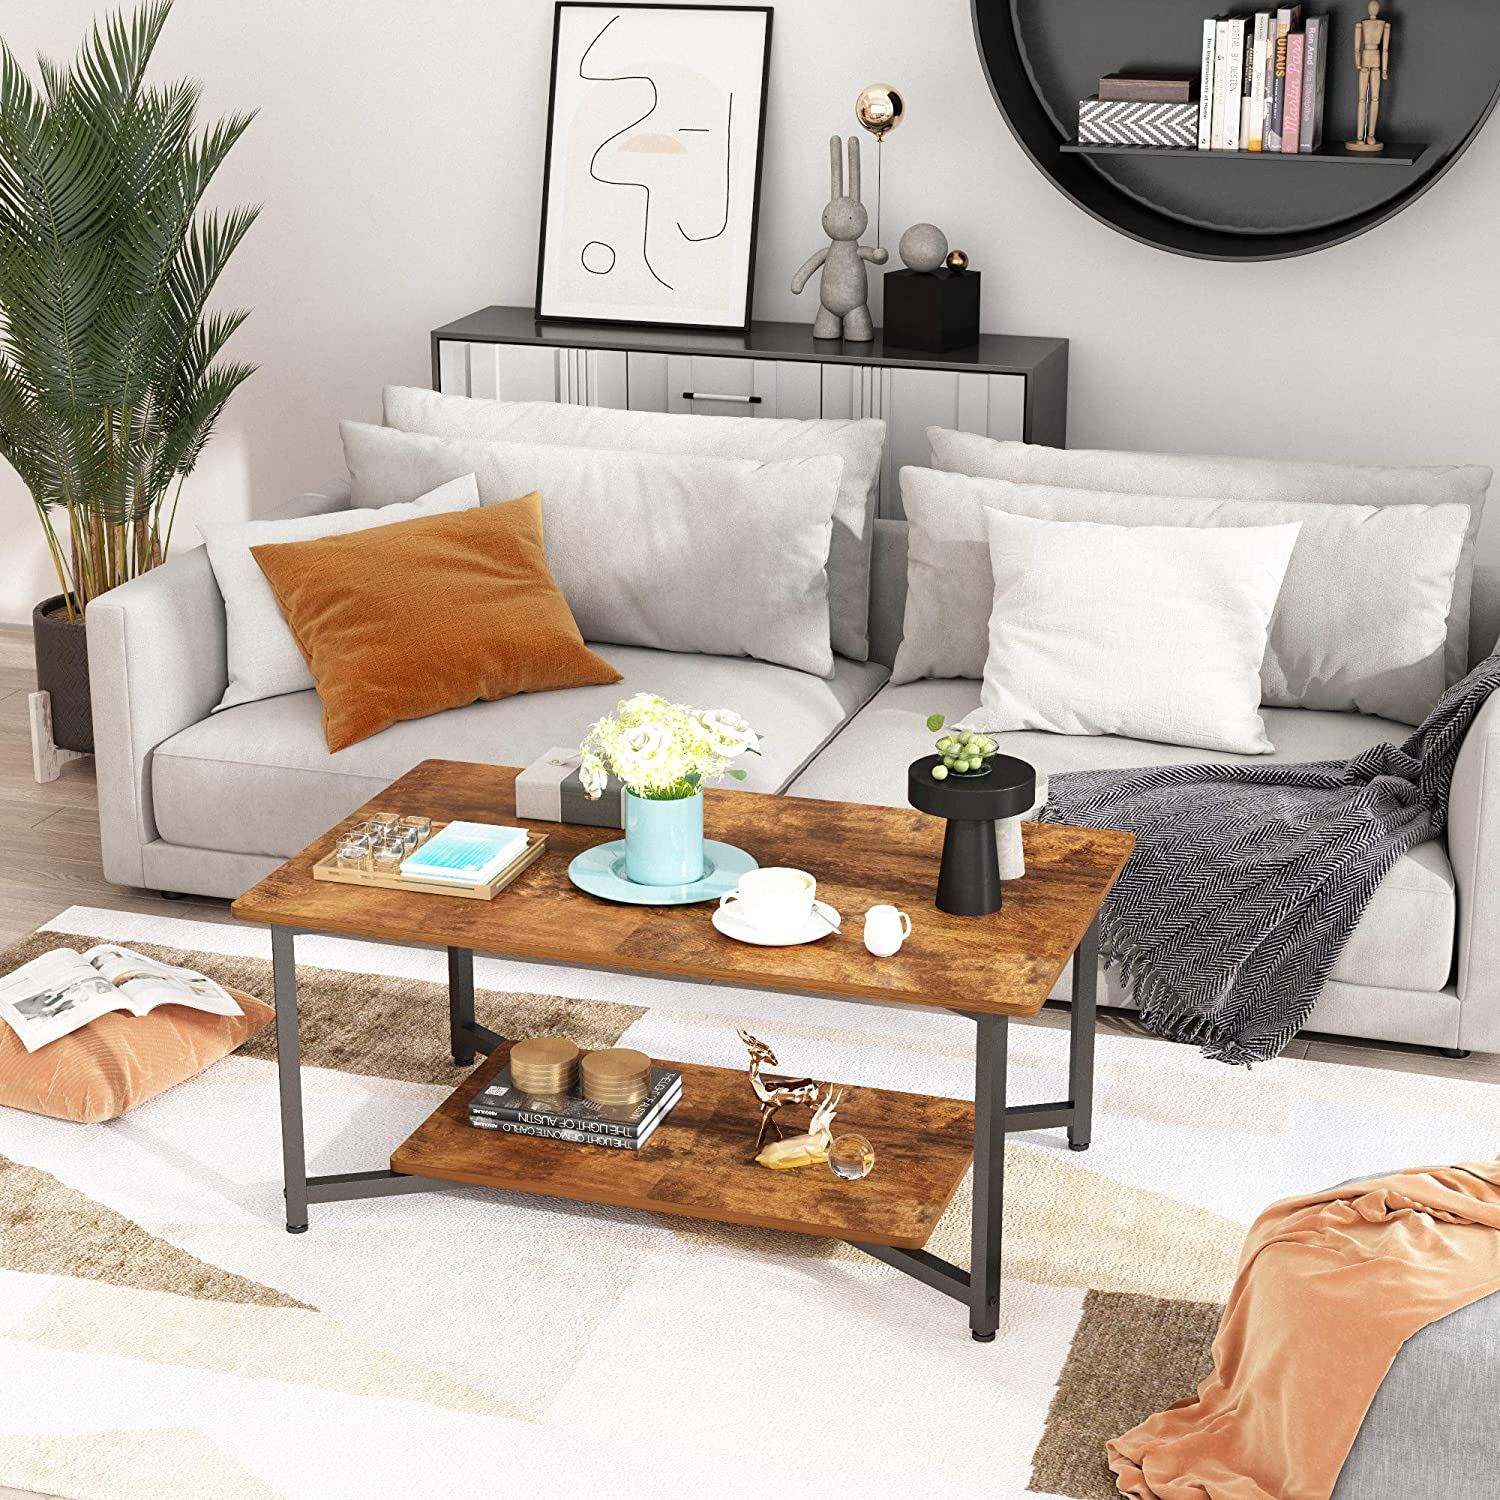 Vintage Oak Finish JOISCOPE Coffee Table with Open Shelf for Spacious Storage,2-Tier Coffee Desk,Industrial-Style Living Room Desk